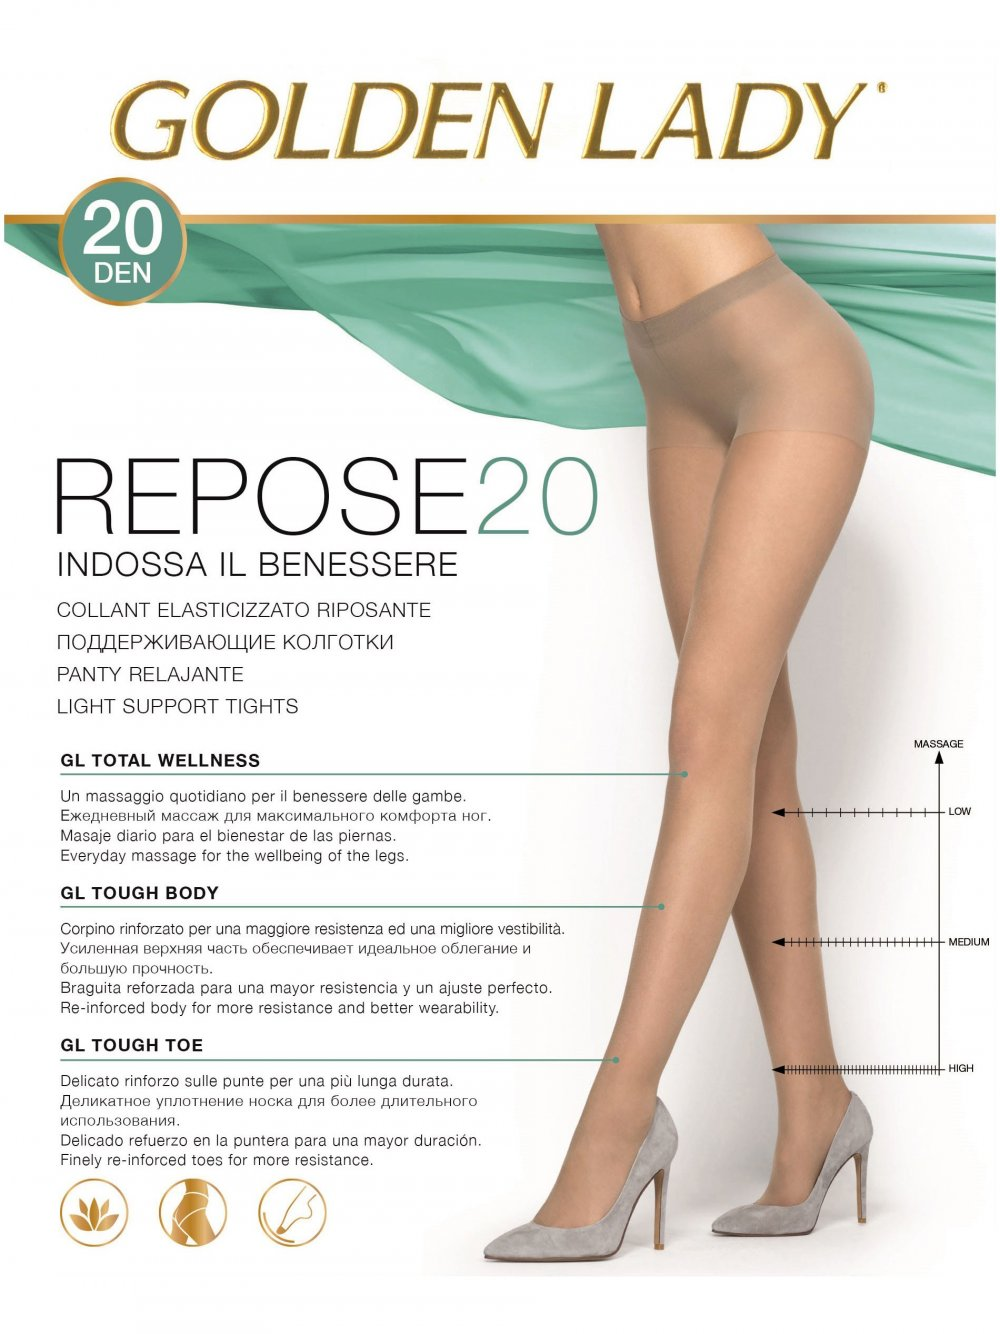 REPOSE 20 DEN GOLDEN LADY COLLANT RIPOSANTE VELATO